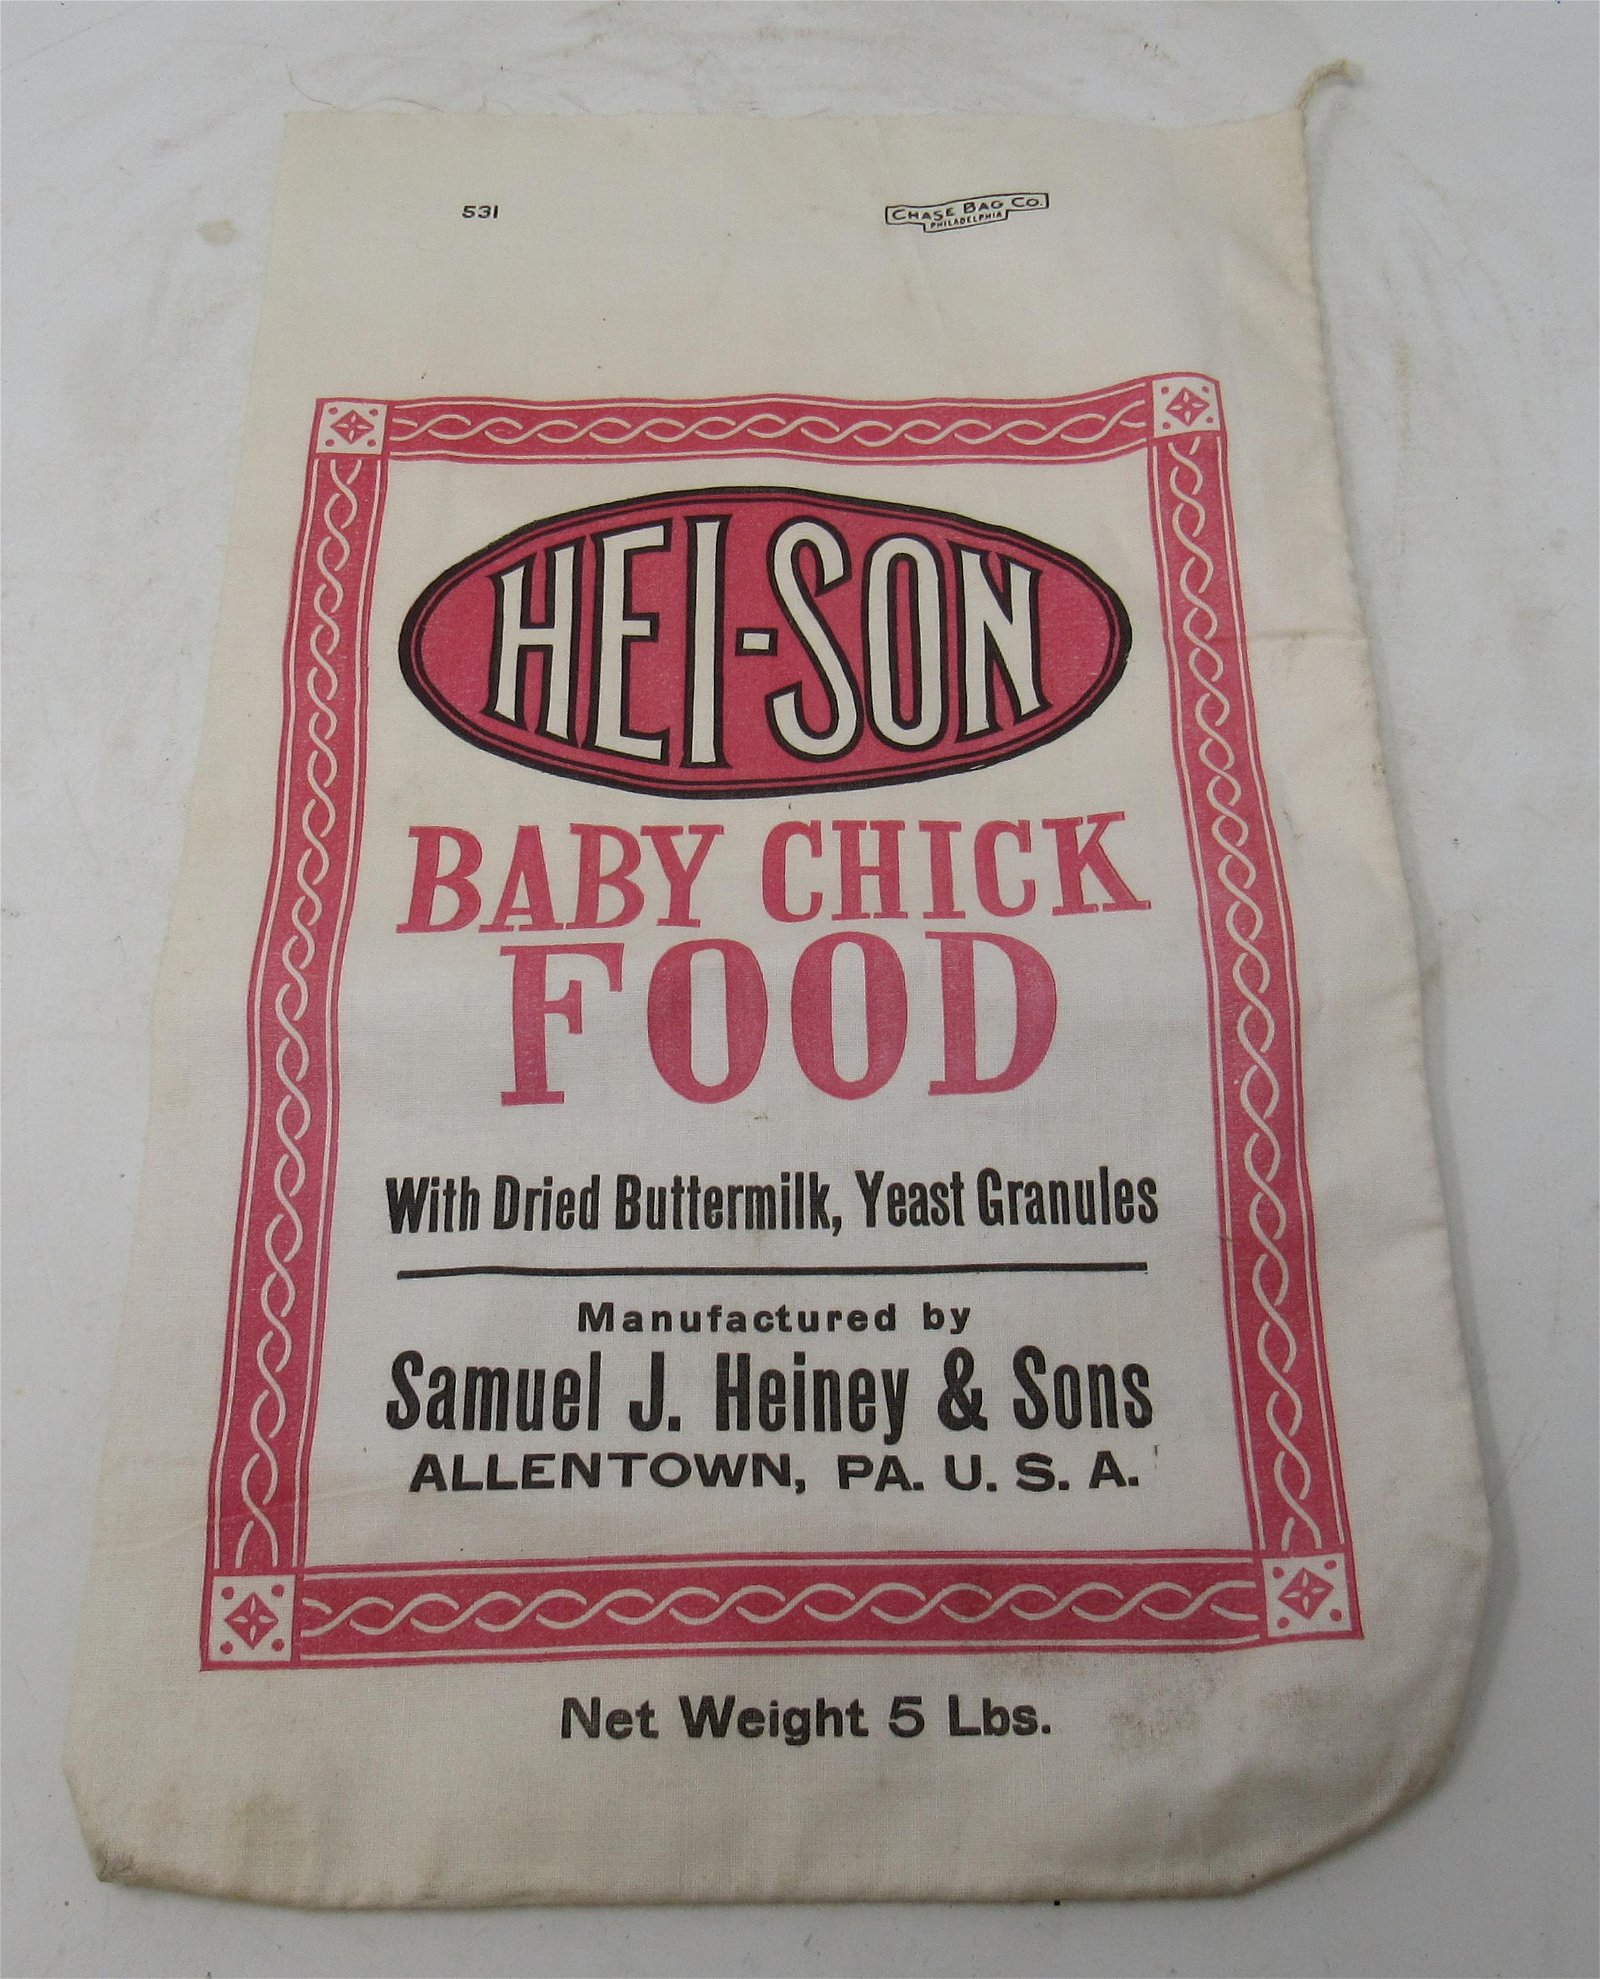 Hei-Son Baby Chick Food Bag Allentown Pa